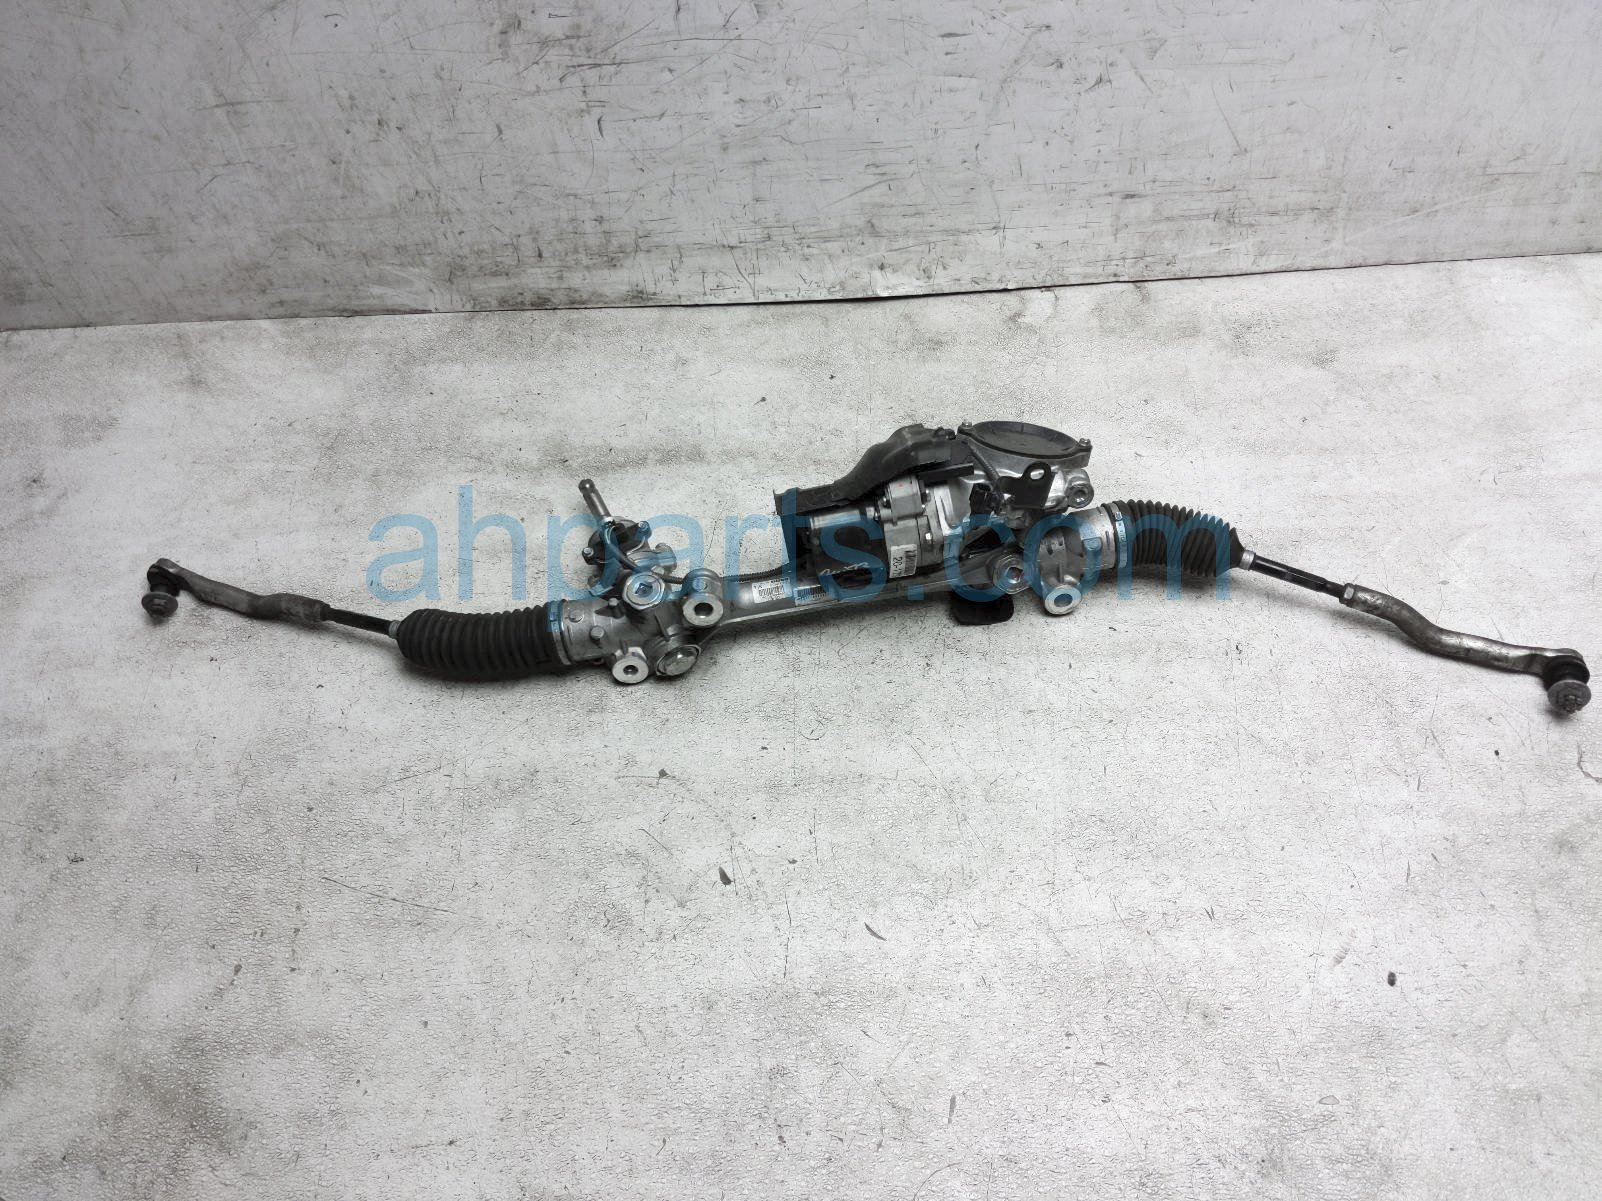 2018 Honda Civic Gear Box Power Steering Rack And Pinion 53620 TGH A10 Replacement